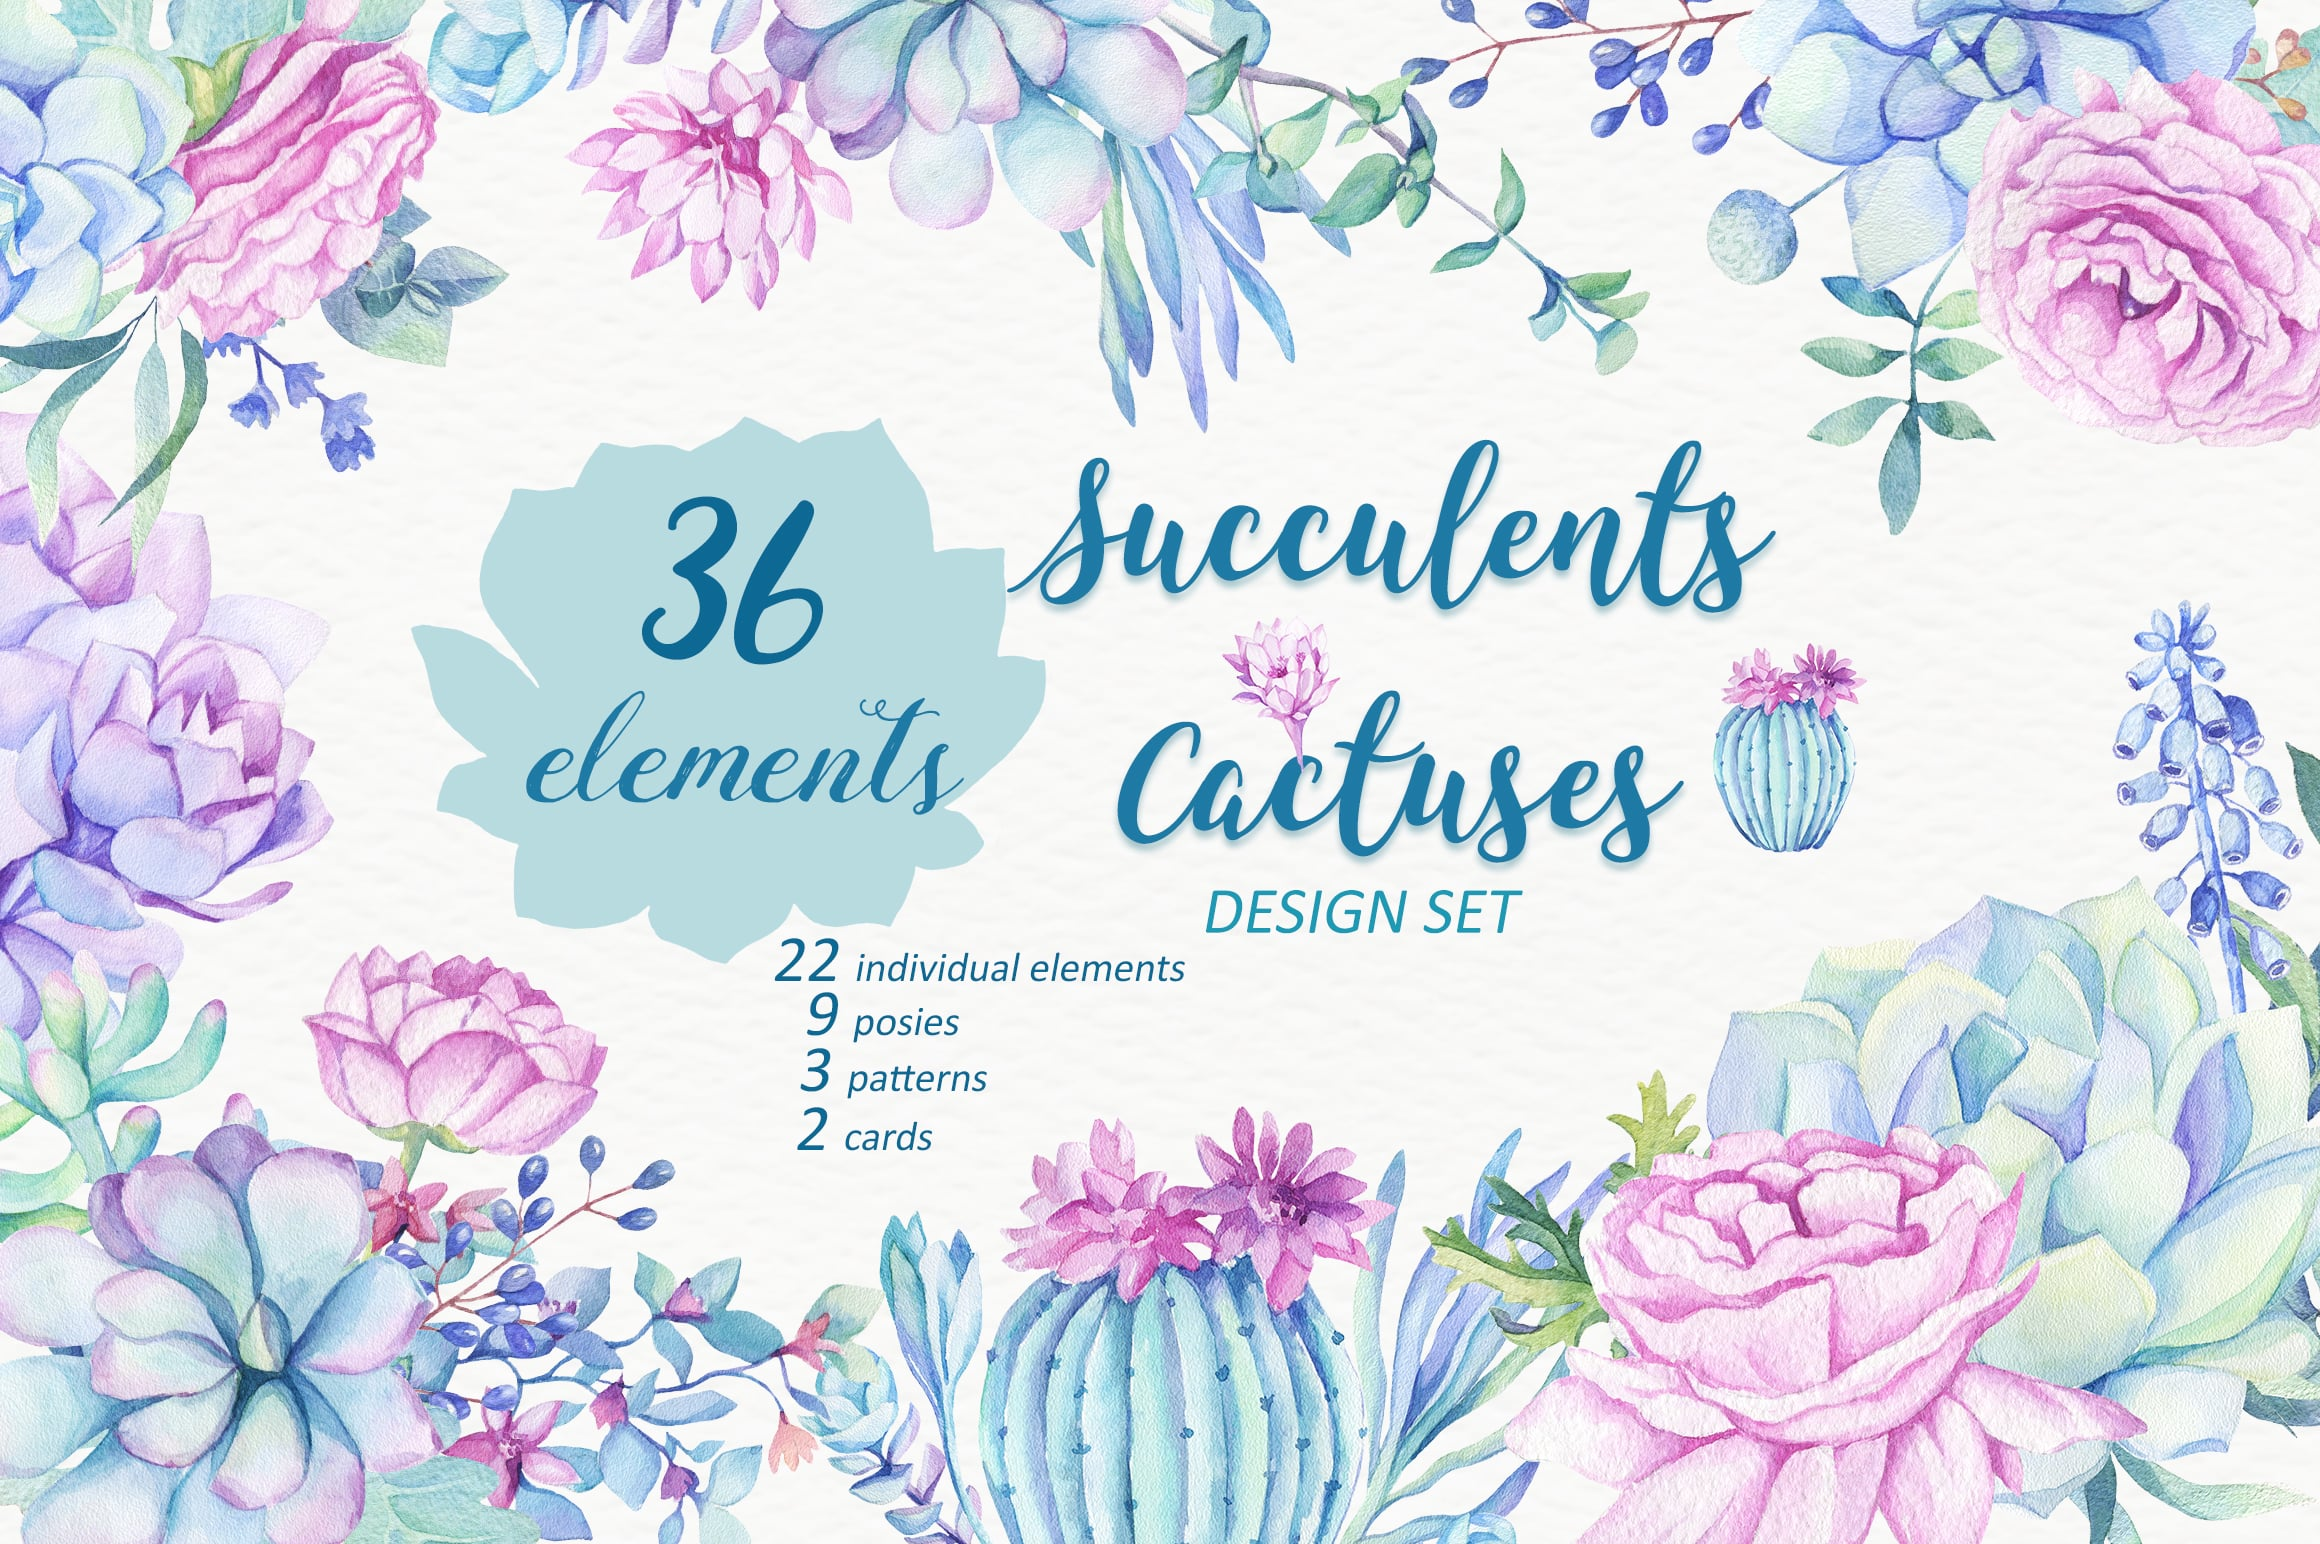 Succulents & Cactuses Design Set